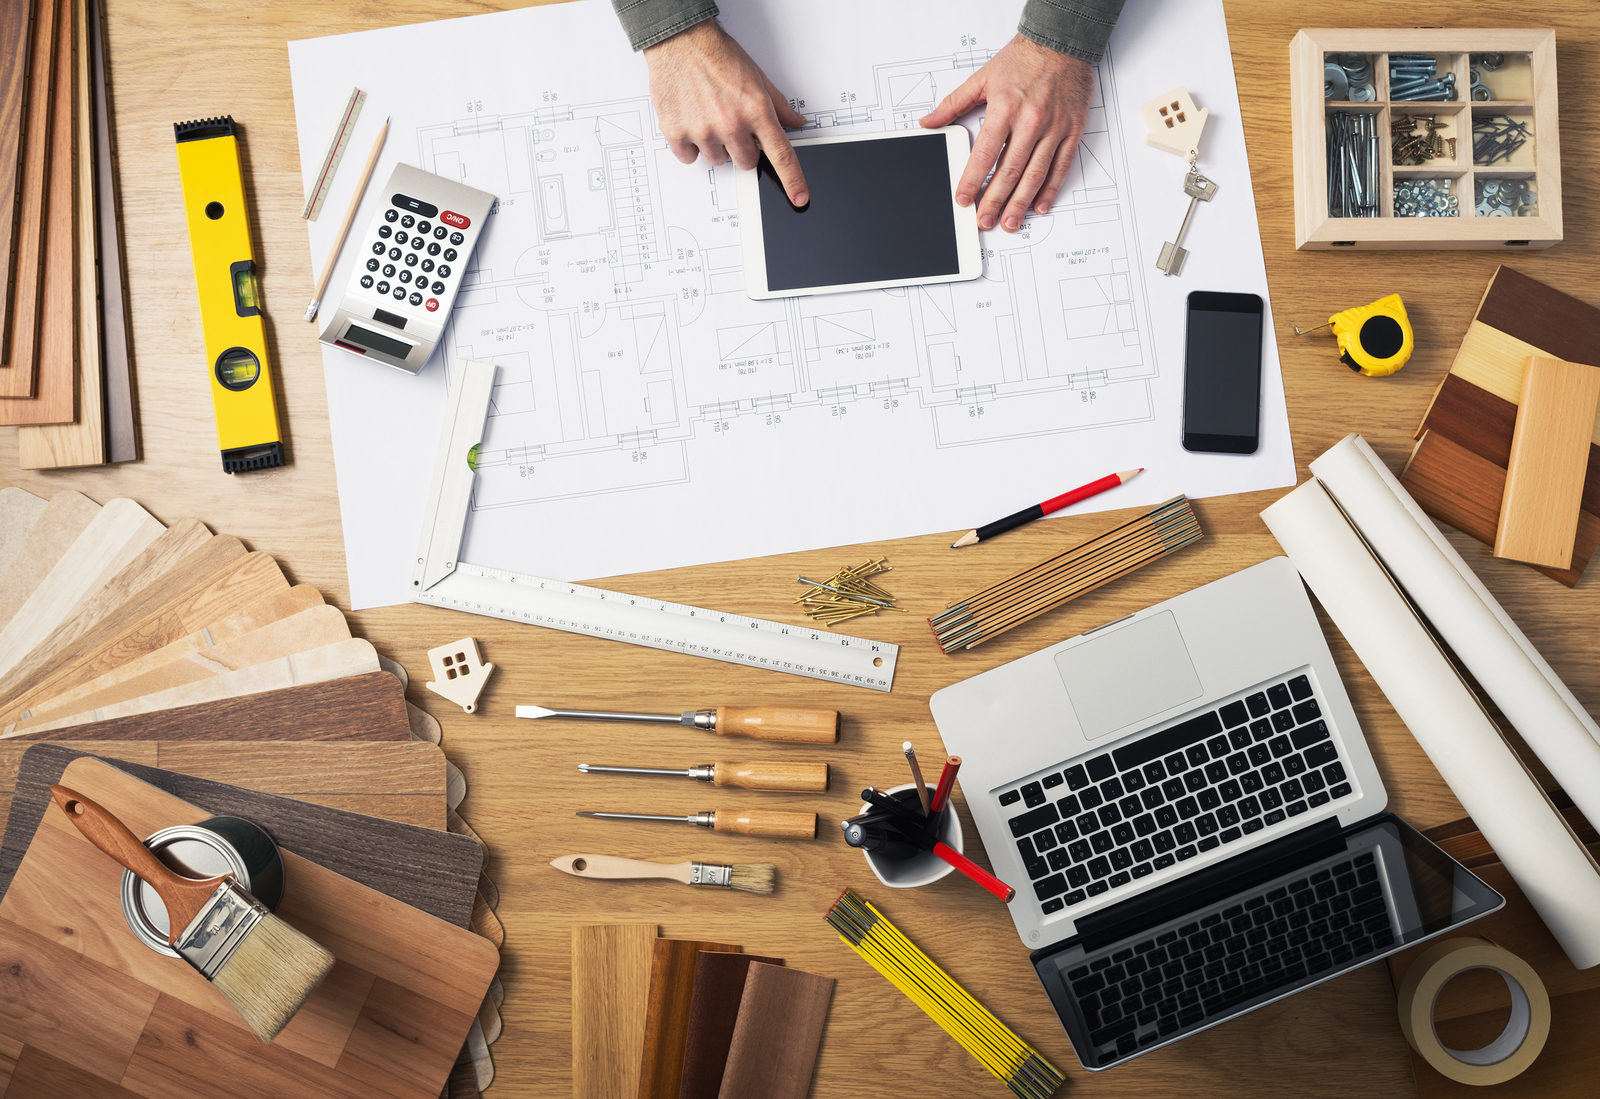 Construction engineer and architect's desk with house projects laptop tools and wood swatches top view male hands using a digital tablet